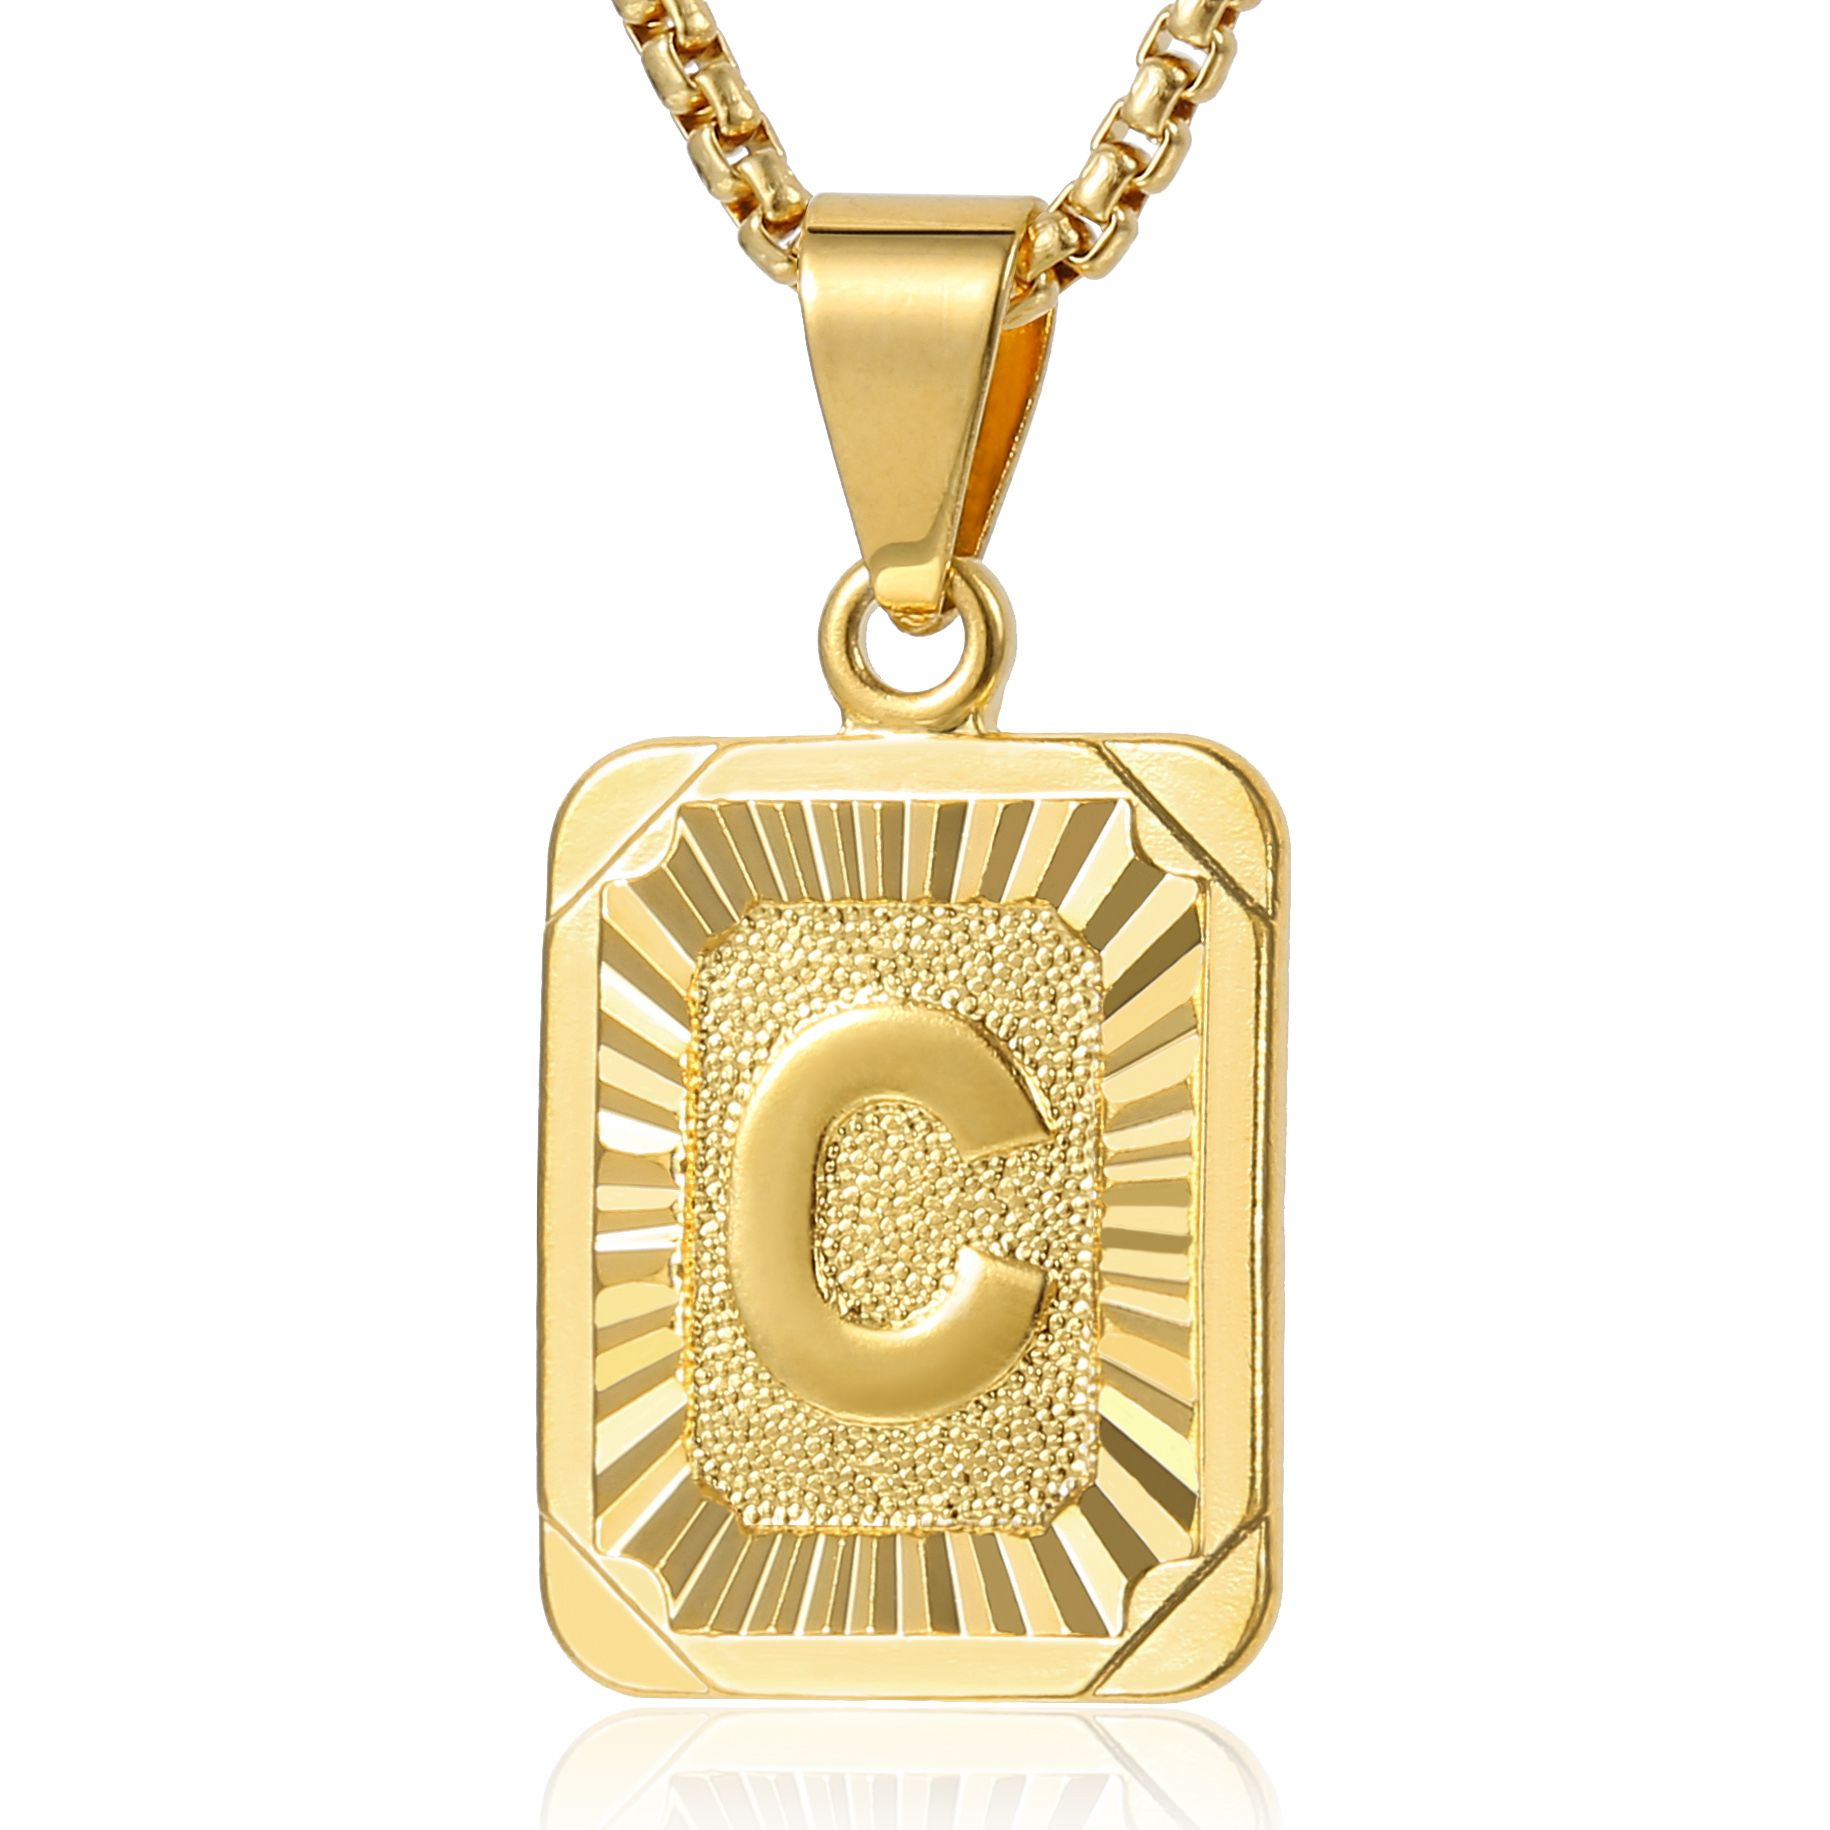 466a65a031f91 Trendsmax Mens Women Chain Letter Pendant Necklace Gold Plated ...